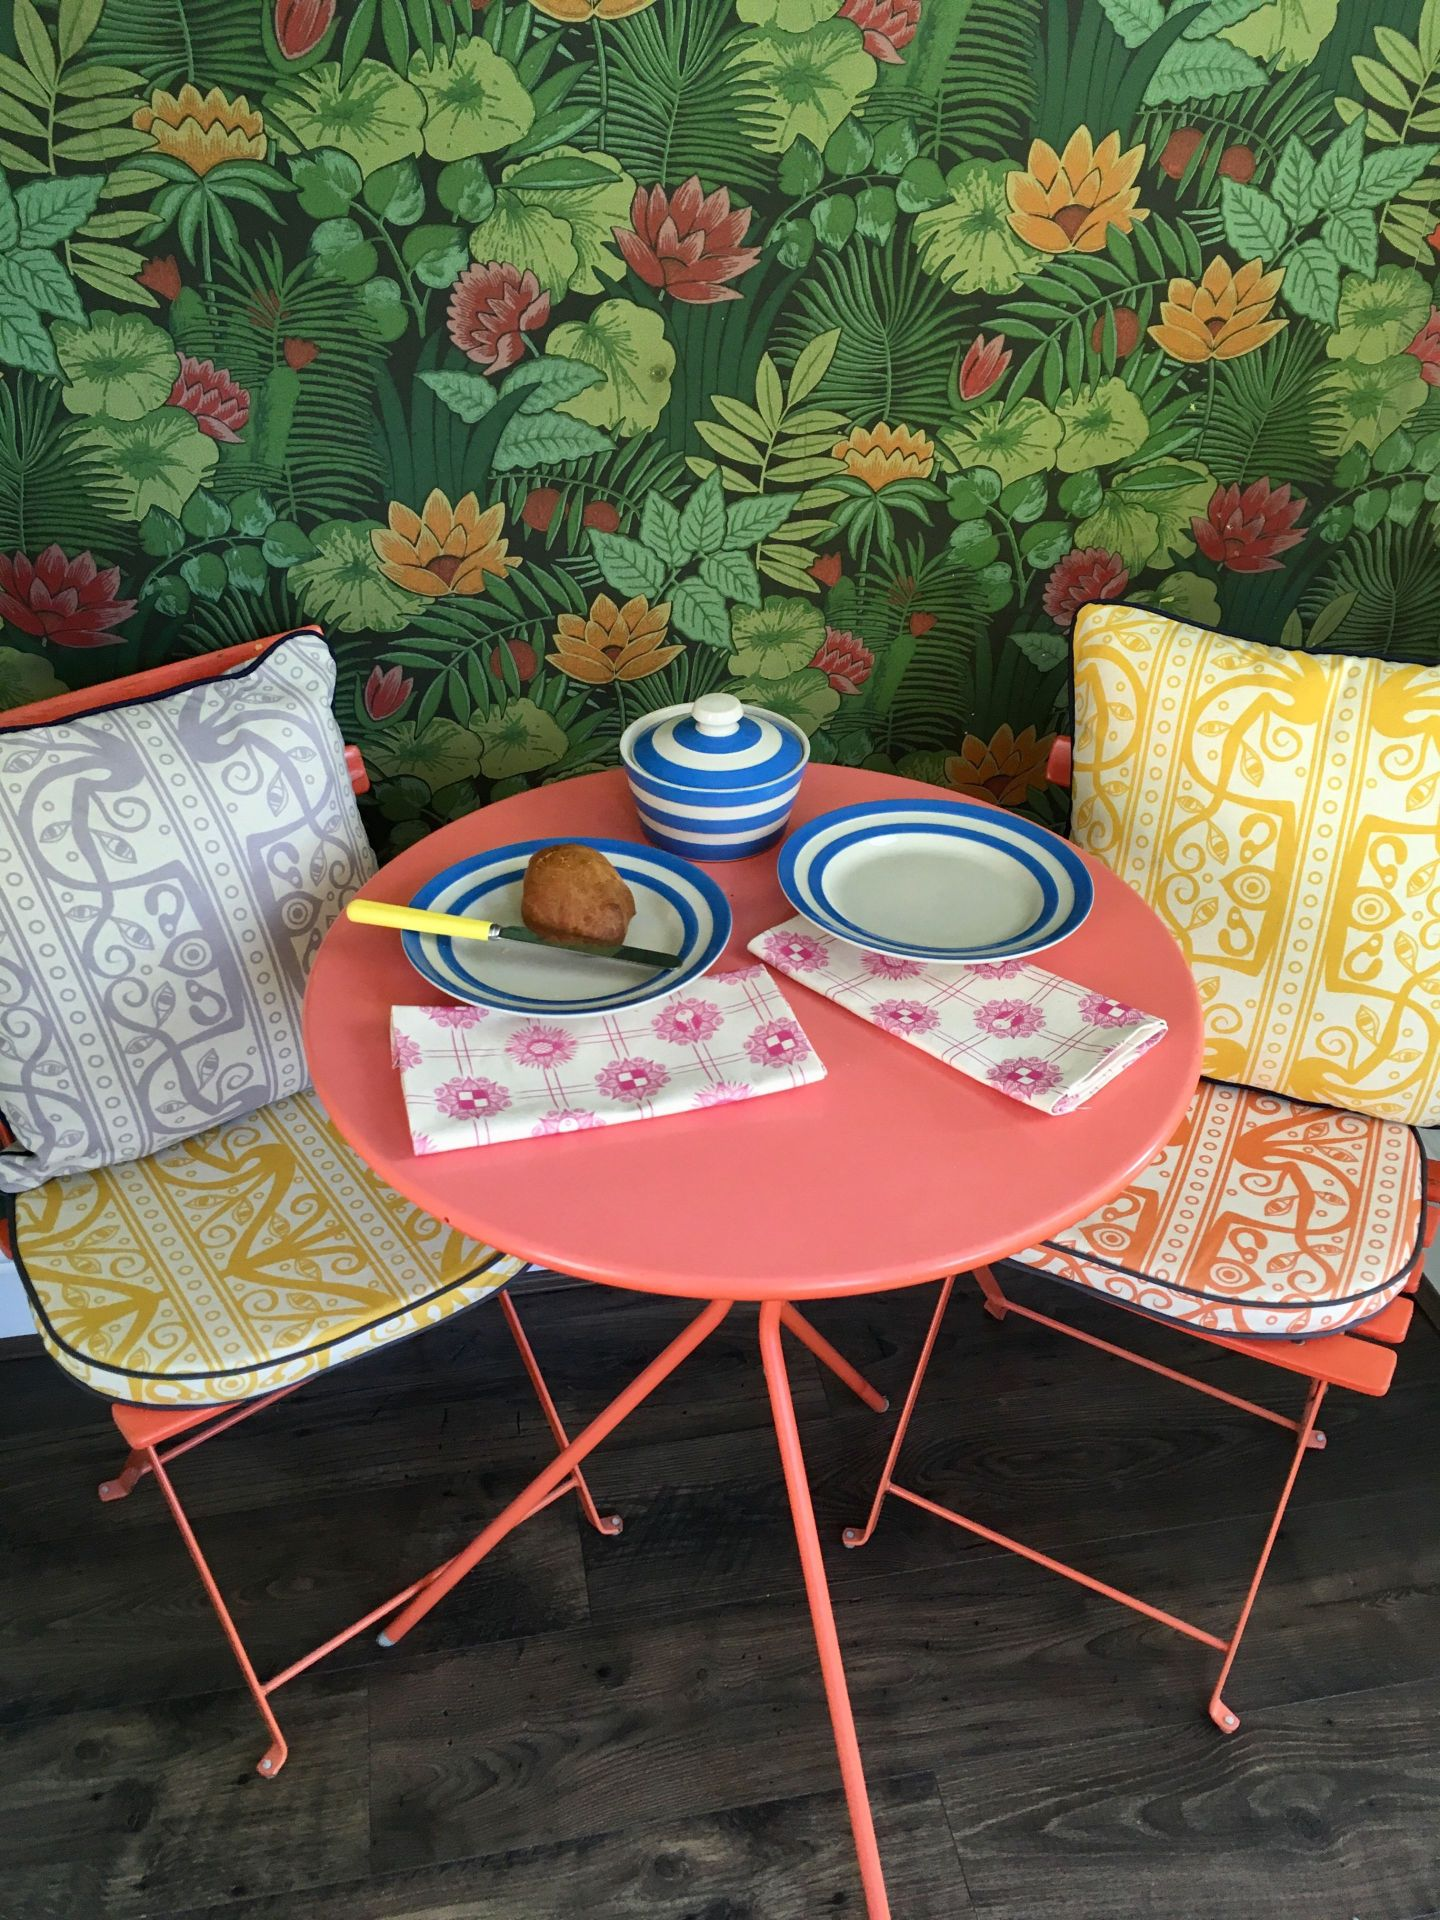 Summer-Picnic-Lifestyle-Shoot-with-Gilman-and-Retro-1-1-1440x1920 Modern Furniture with a Retro Twist for a Southern Home